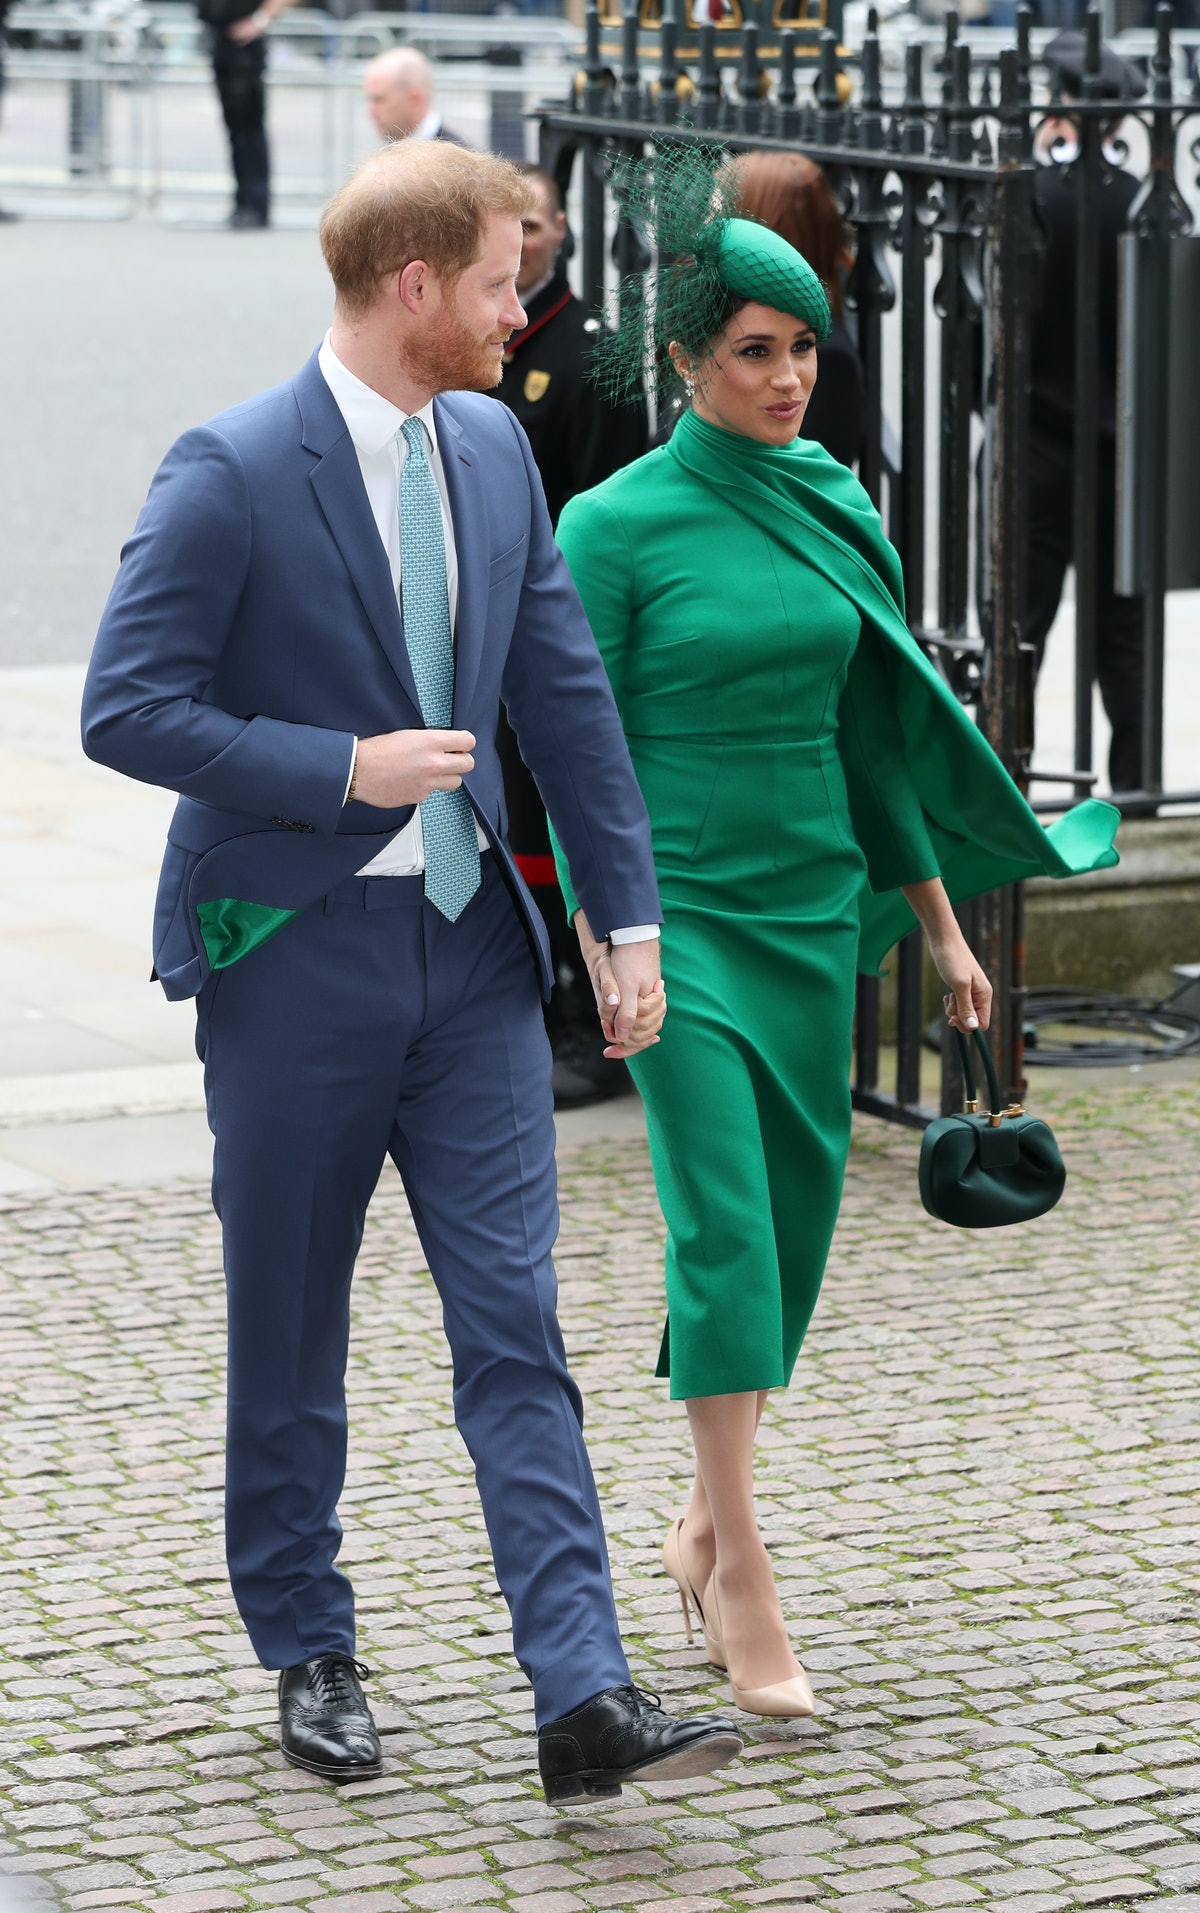 Meghan Markle wore a green dress for Commonwealth Day in 2020.